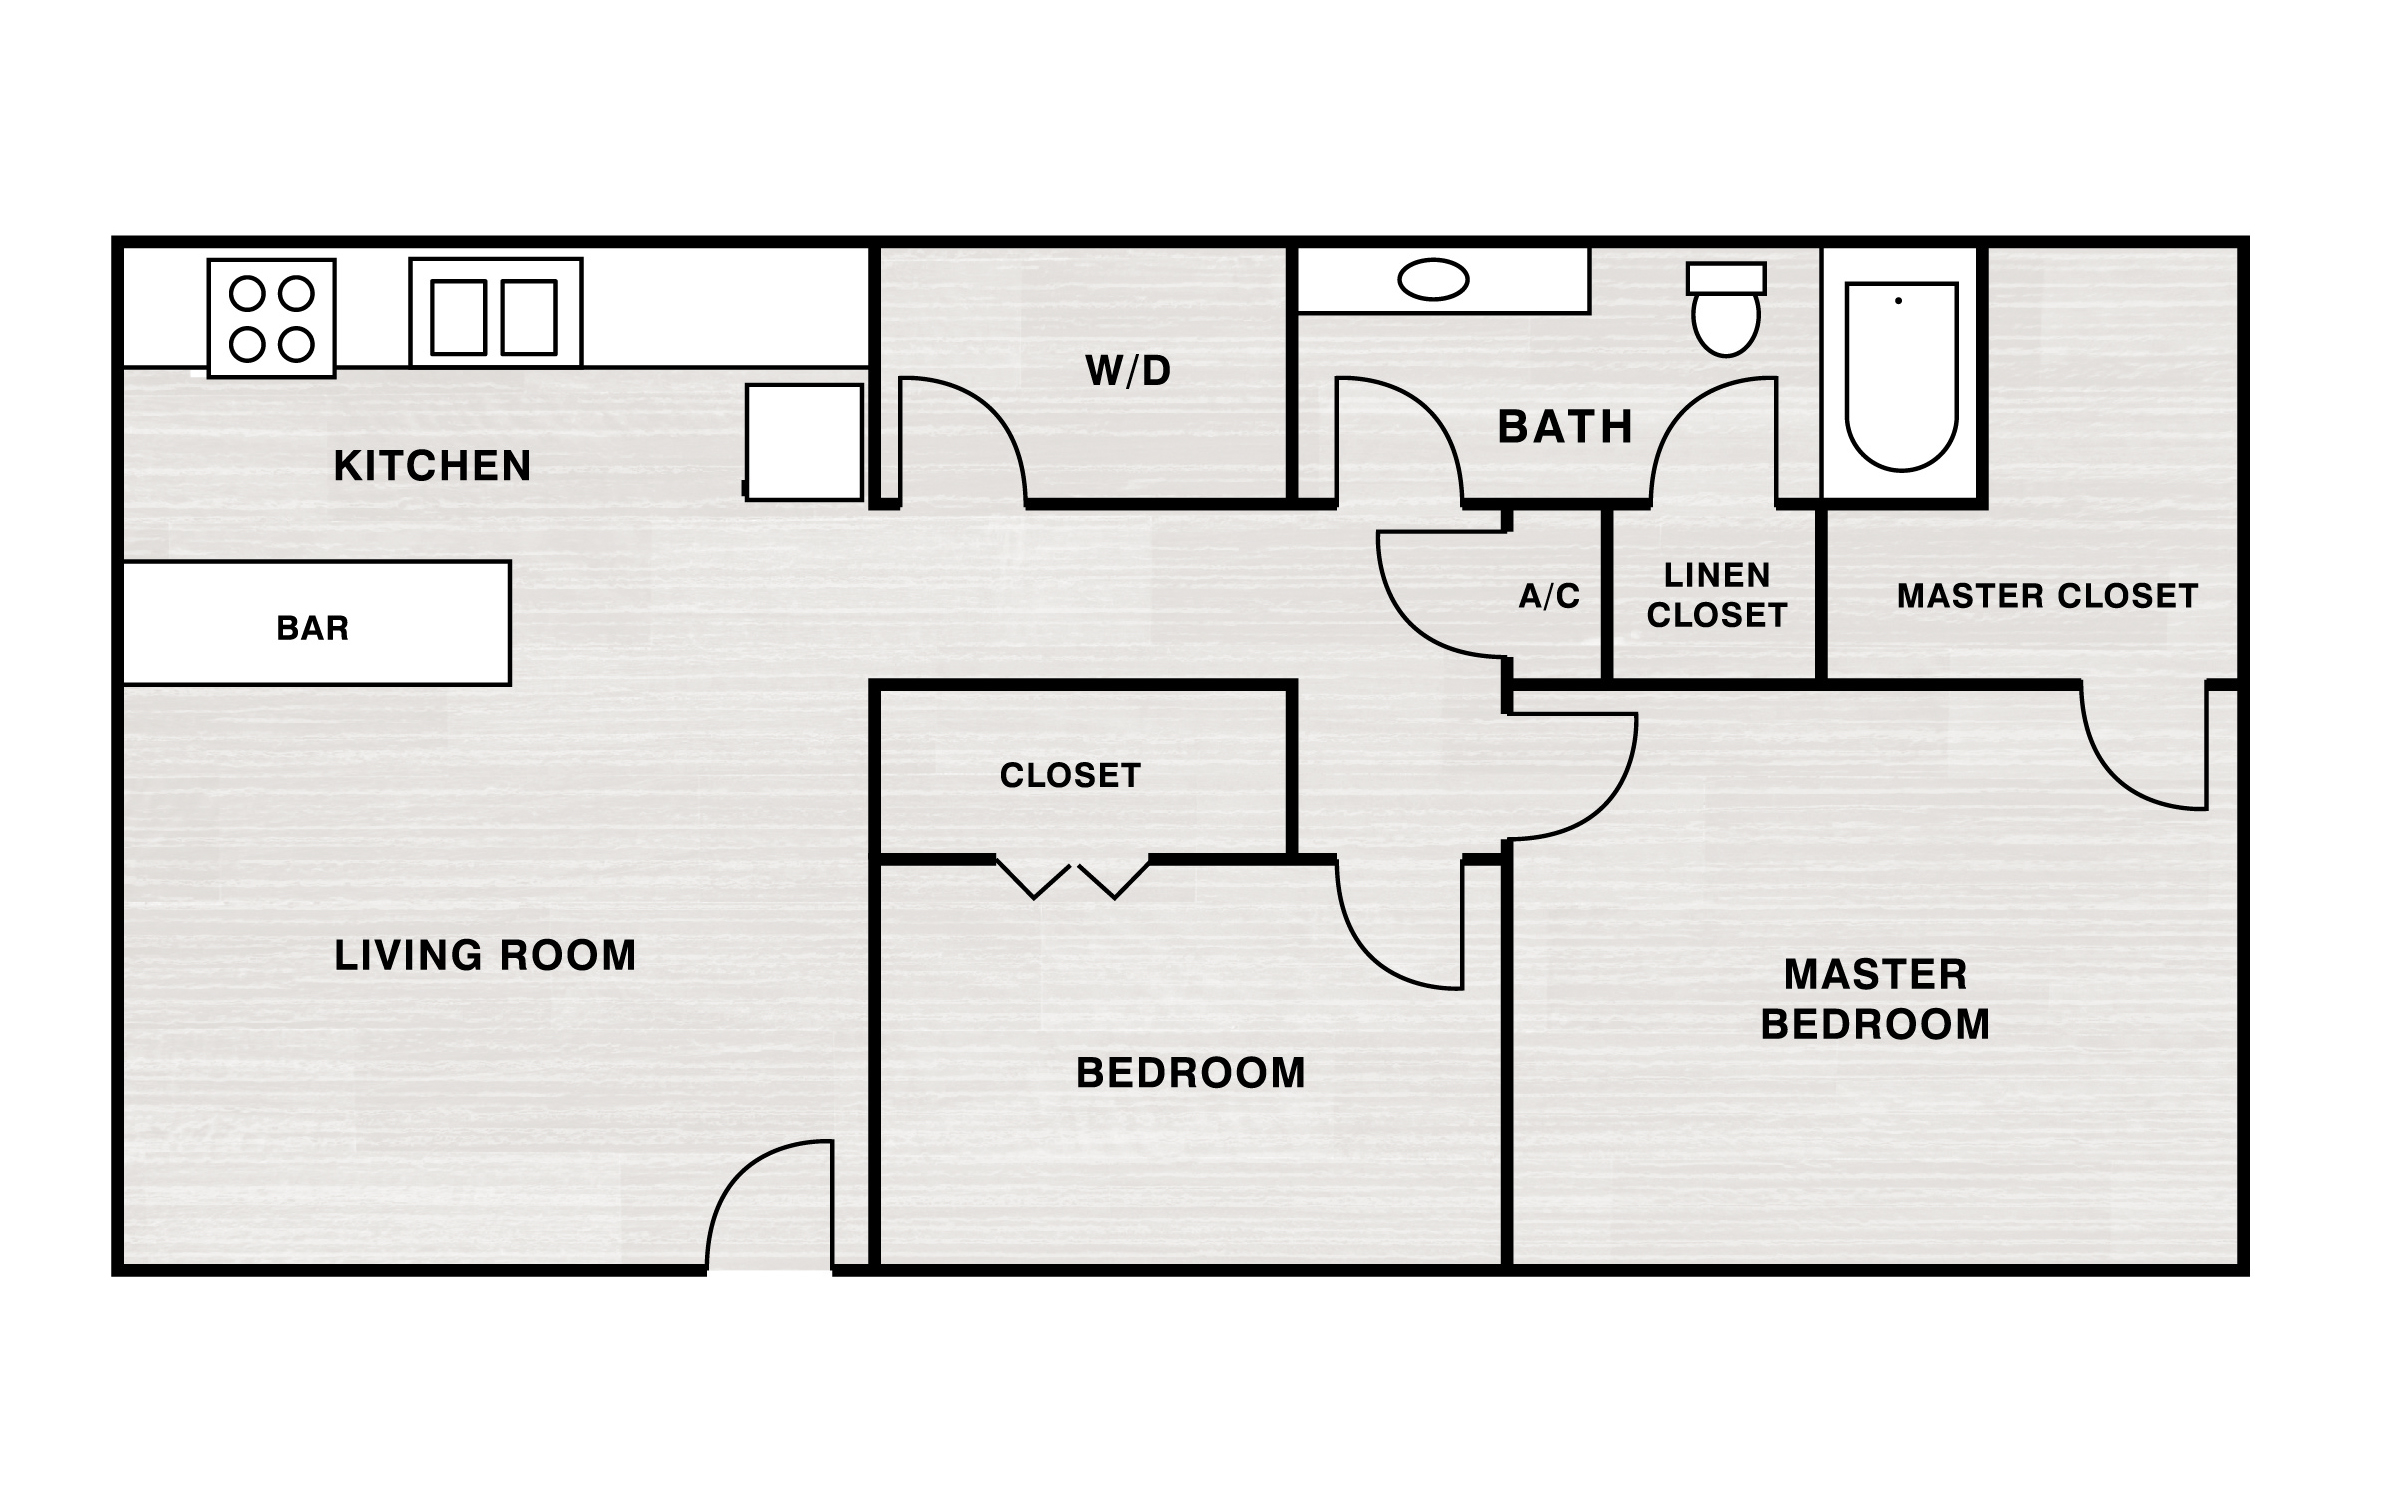 Floorplan - Thoroughbred-Down image